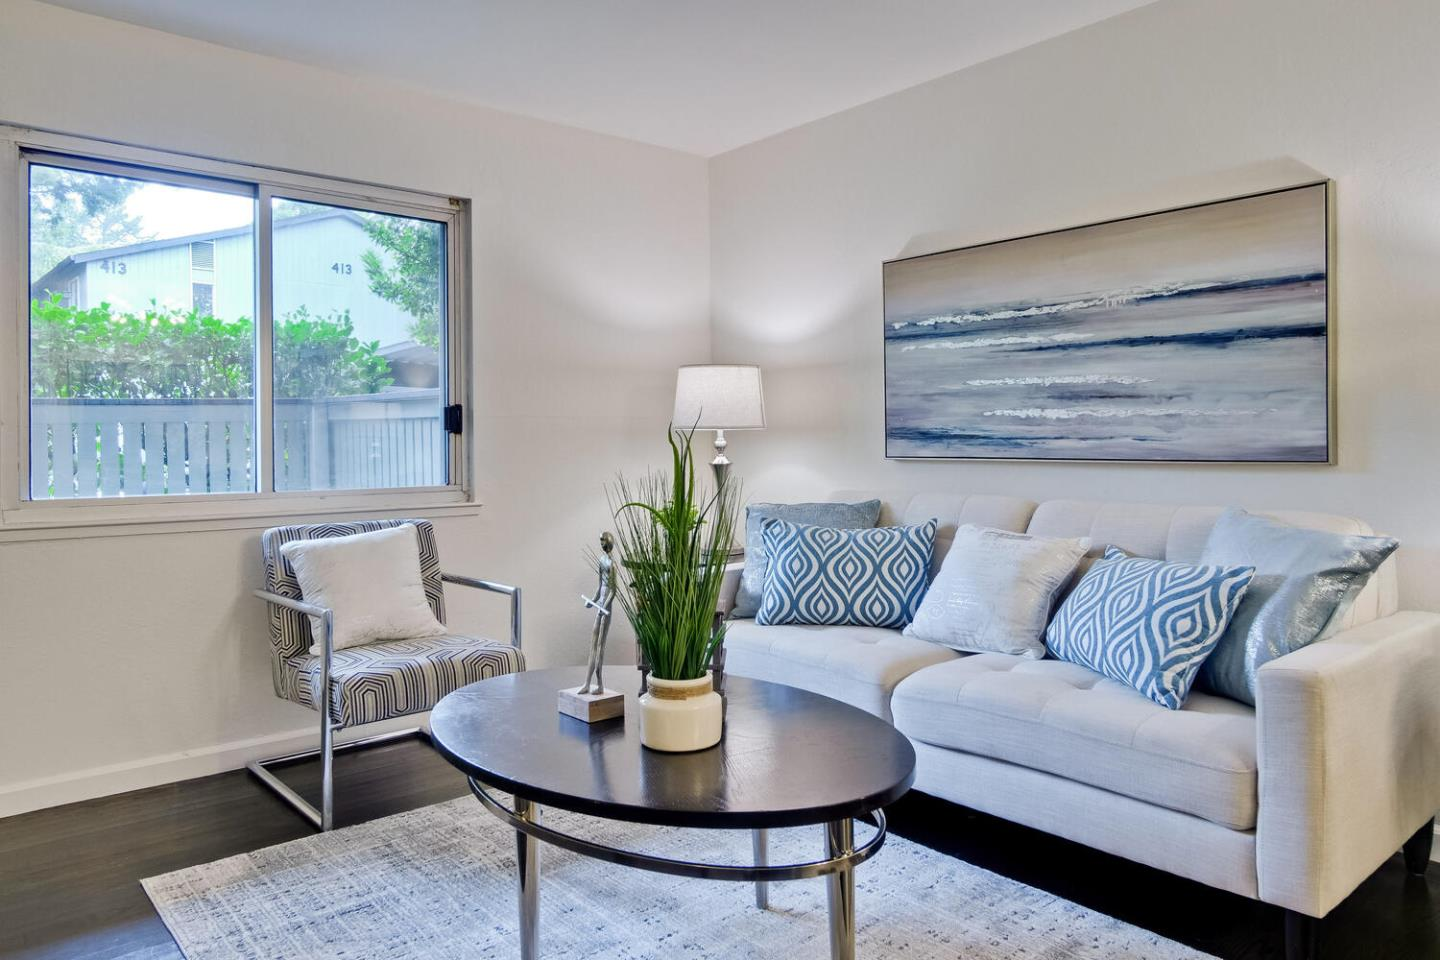 Enjoy living in this amenity-rich and ultra-convenient 1BR, 1BA home just blocks from shopping, bars, restaurants, parks, hiking and more. Residents of this unit have full access to 4 pools, tennis courts, a clubhouse with year-round activities and events, fitness center, spa, laundry, and car parking. This charming one-bedroom condo features a remodeled Kitchen and Bathroom. Kitchen has new quartz countertops w/ glass tile backsplash, new cabinets, brand new 2 door s/s refrigerator/freezer, new range/oven with hood, and a kitchen sink w/ full down spray head. Open living room with dining space. Mirror wall cabinet. Master bedroom has large walk-in closet. Newly remodeled bathroom has shower over tub, vanity cabinet w ample storage and laminate flooring. Walk to Mollie Stones, Starbucks, CVS, & Commodore Park. Sweeney Ridge hiking trails, Tanforan Mall are nearby. Lots of commute options including 280, 380, 101, Skyline, SF Airport BART. Pet friendly. Low HOA dues.